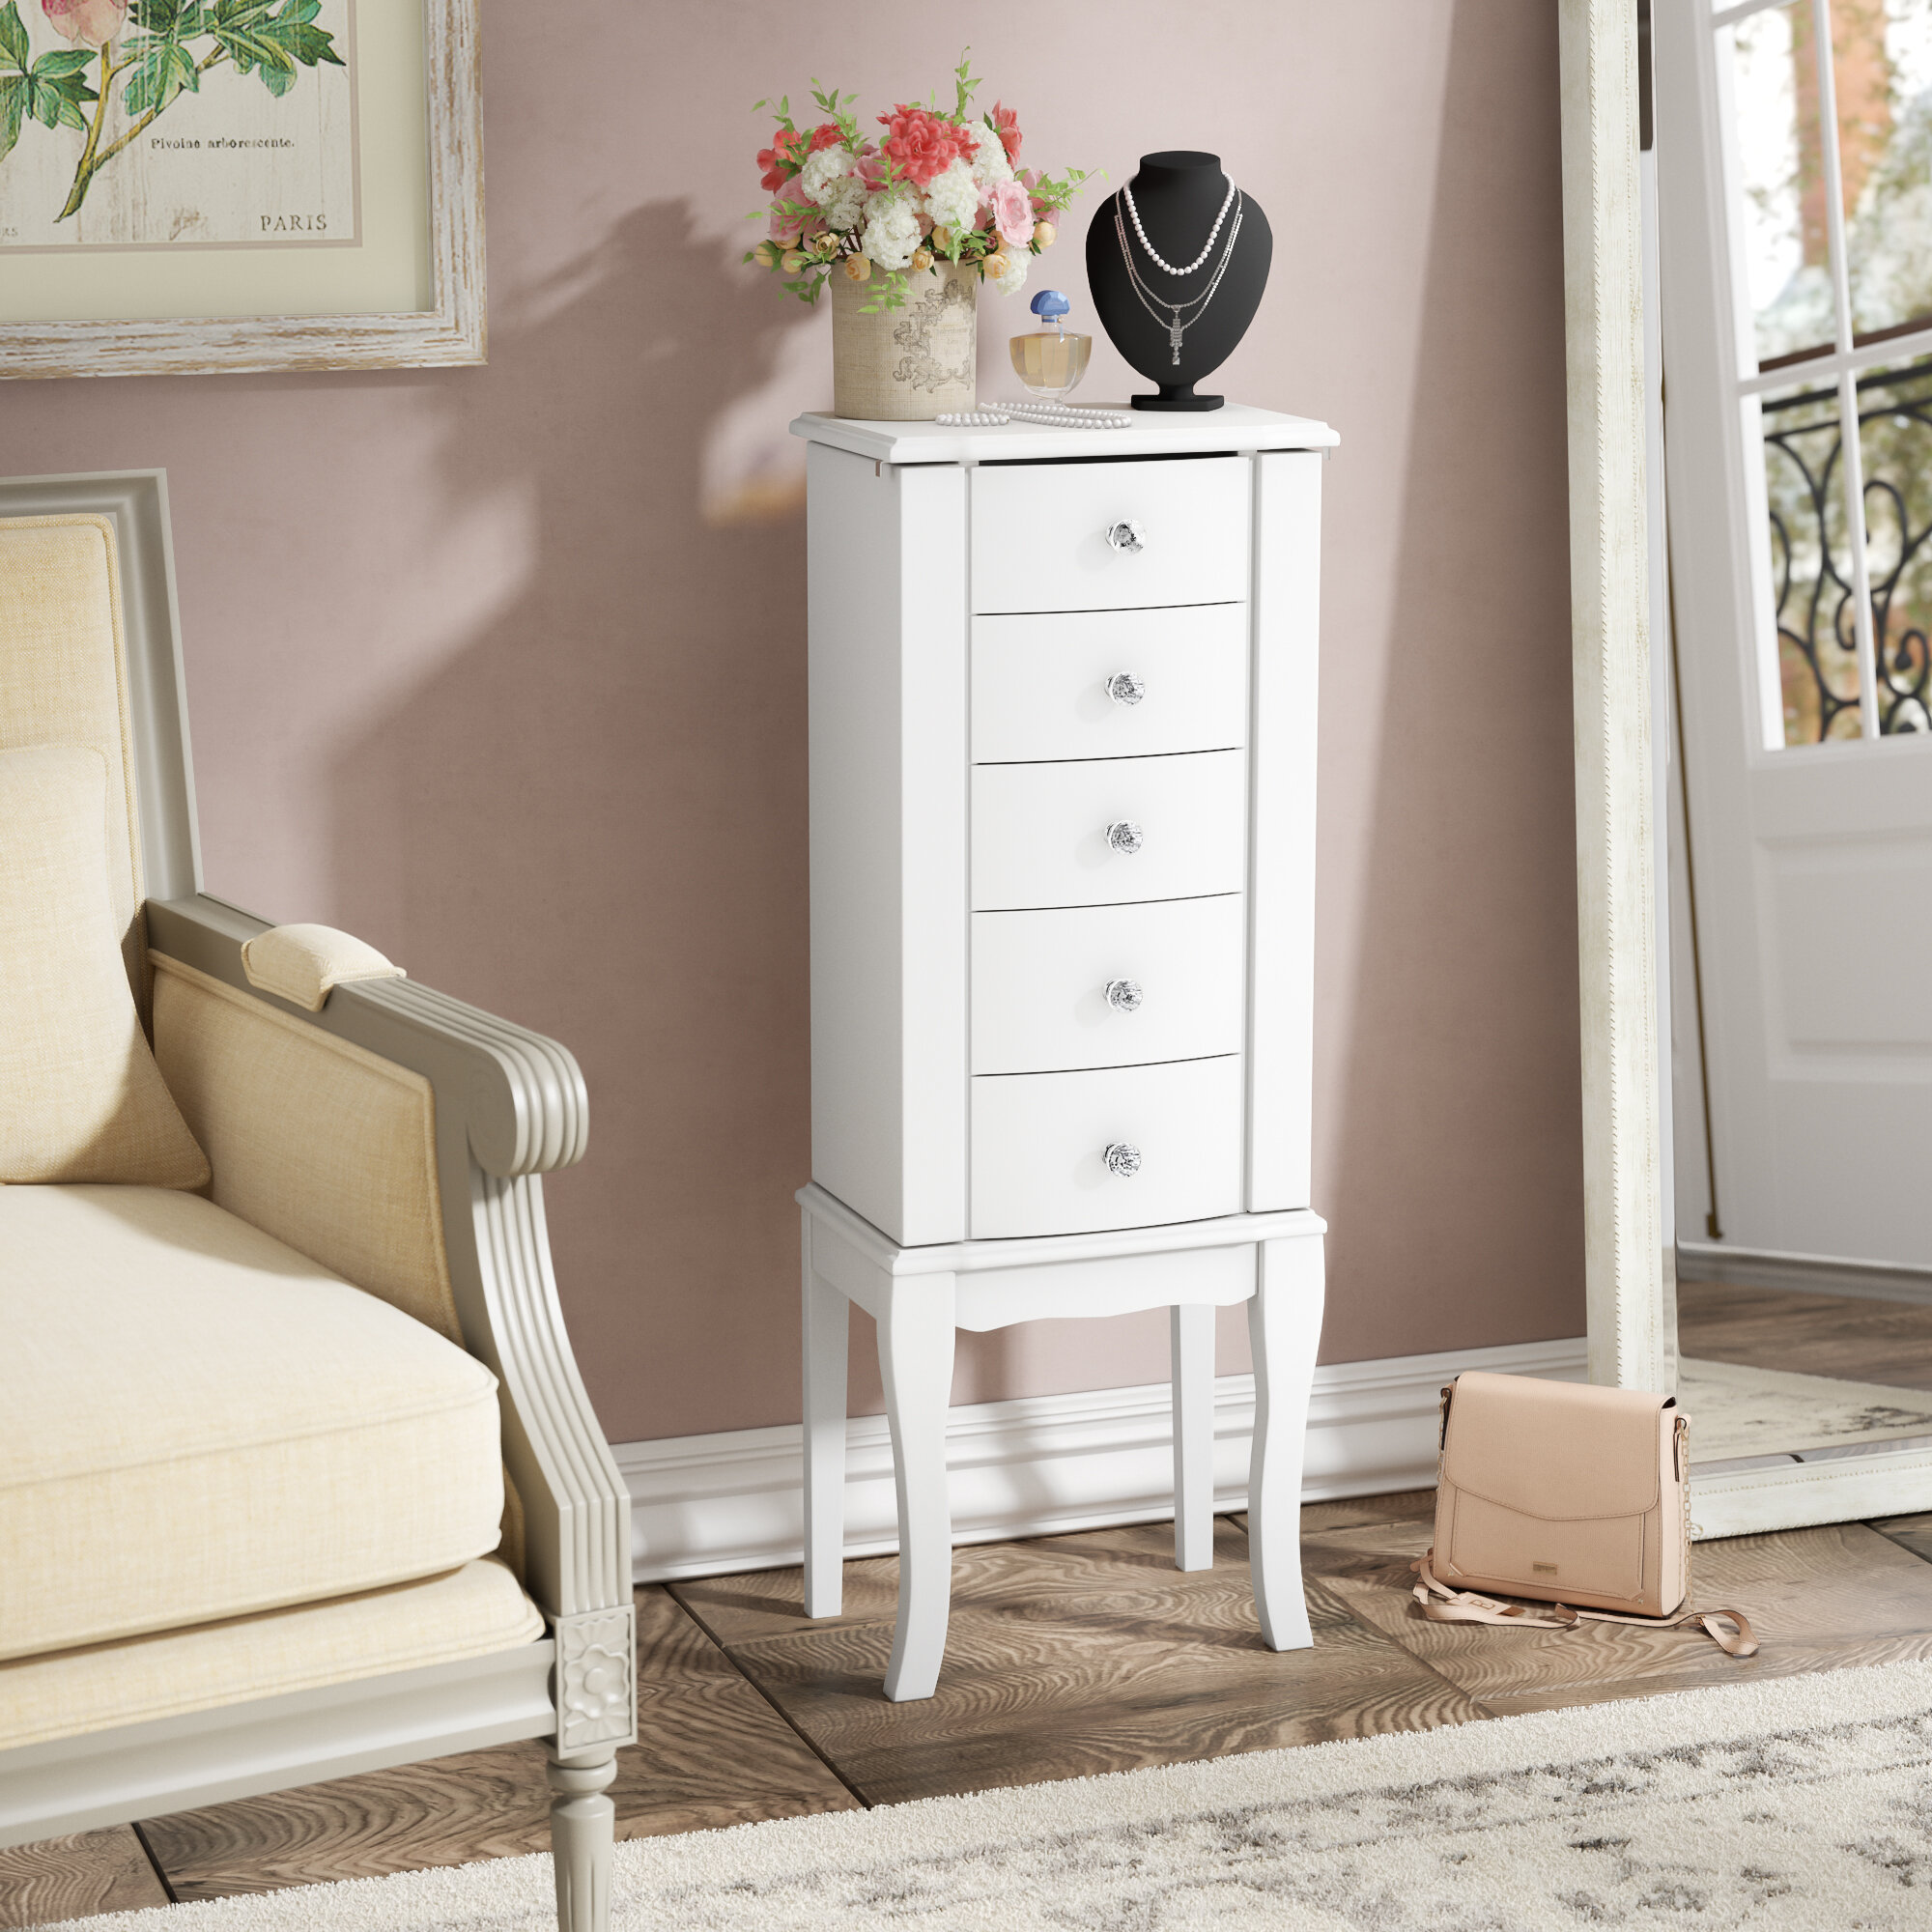 Ordinaire Zariah White Jewelry Armoire